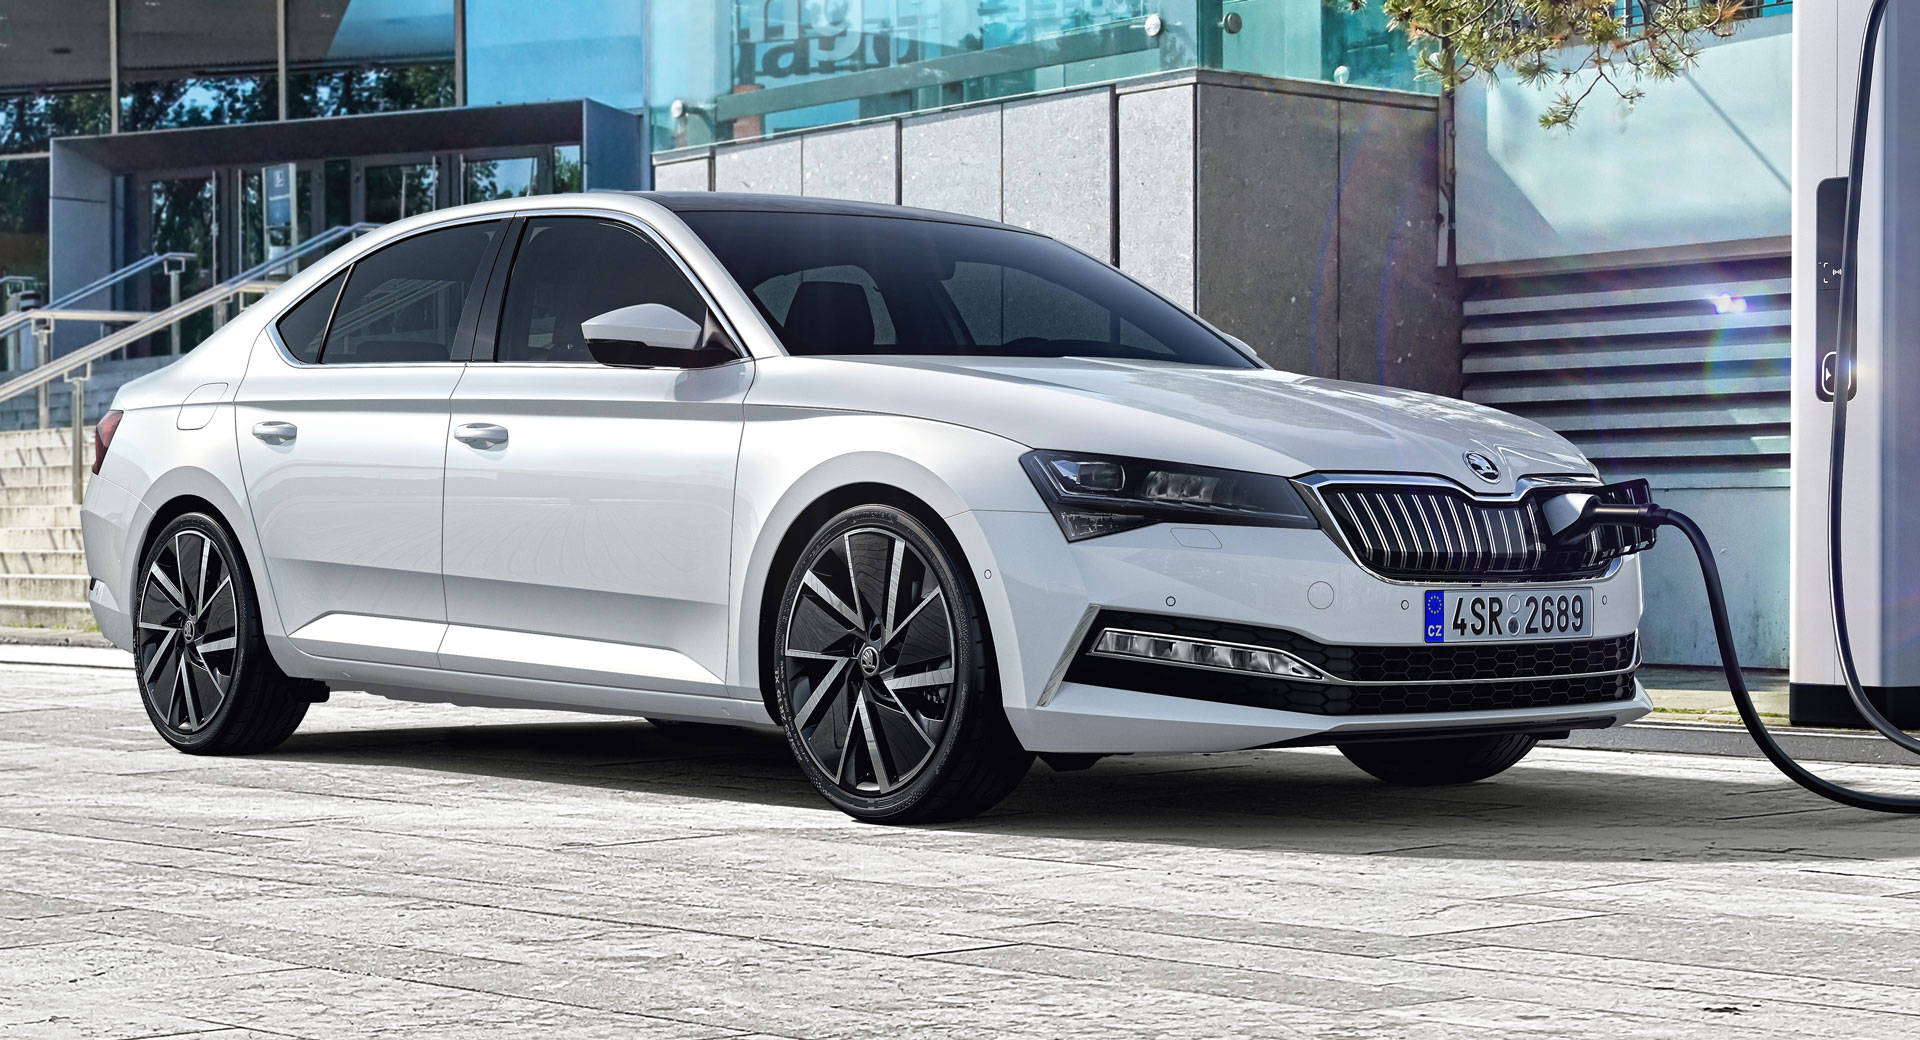 Future Cars 2020 >> 2020 Skoda Superb iV Is A Plug-In Hybrid With 55 Km Of Electric Range   Carscoops